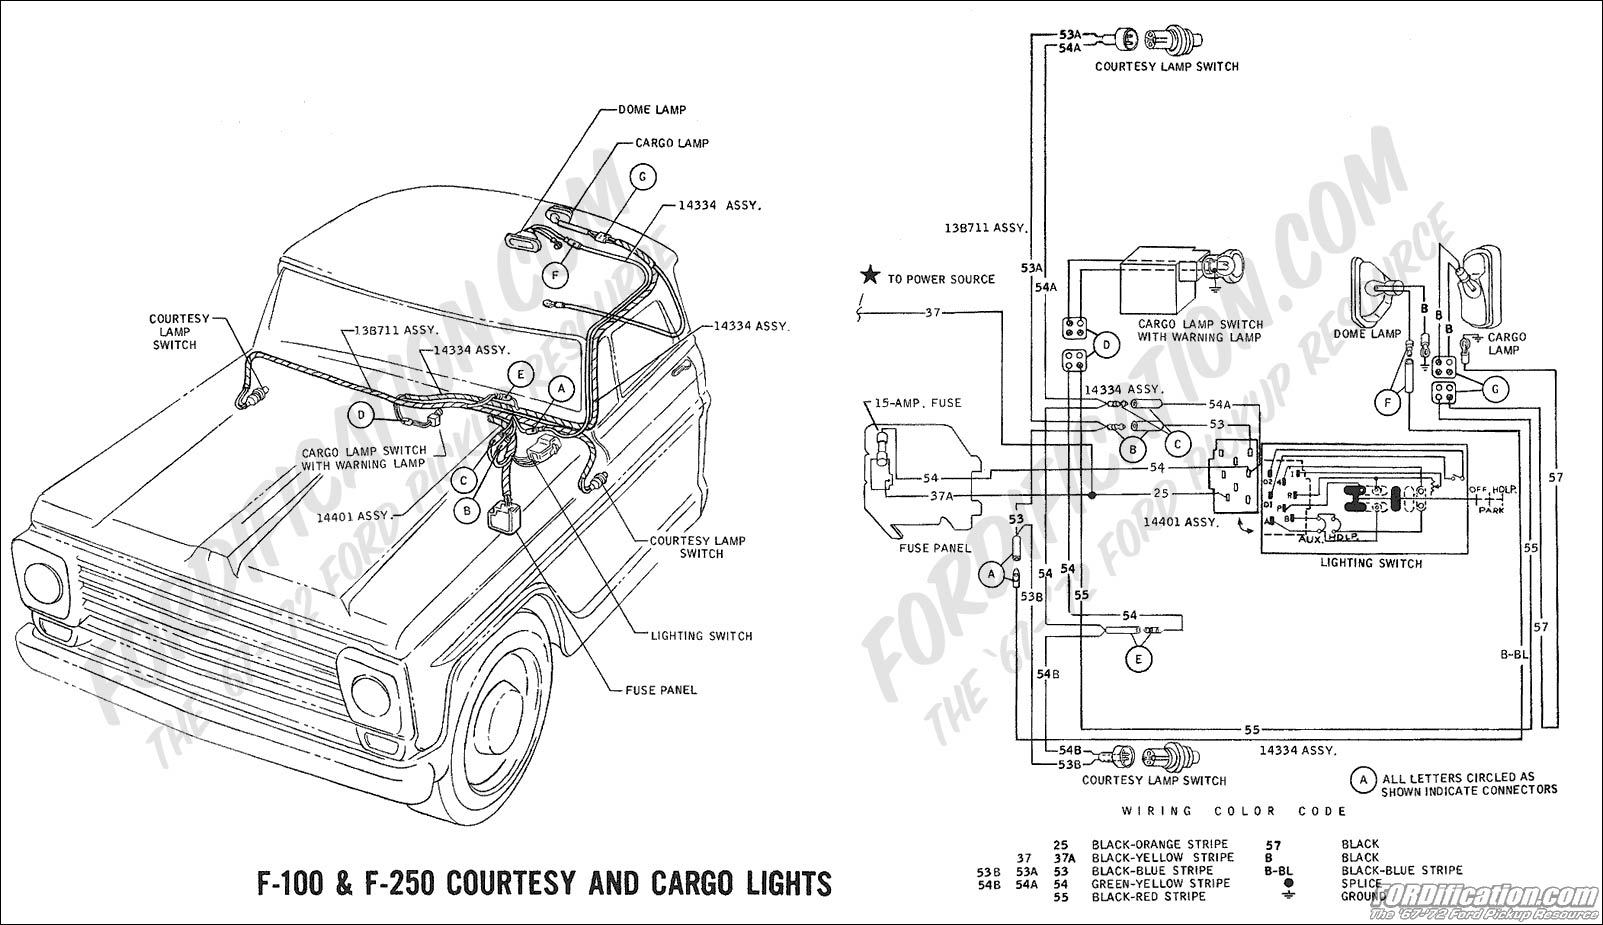 wiring_69courtesycargo  Ford Alternator Wiring Diagram on ford truck wiring diagrams, ford 6.0 alternator, ford g3 alternator, ford 1-wire alternator conversion, ford alternator pinout, alternator parts diagram, ford alternator connections, ford starter relay, ford 6g alternator wiring, ford voltage regulator, ford truck alternator diagram, ford alternator identification, ford 3 wire alternator diagram, ford 1 wire alternator wiring, ford alternator regulator diagram, ford alternator wiring harness, ford 3g alternator wiring, ford alternator wiring hook up, ford alternator system, ford charging system diagrams,